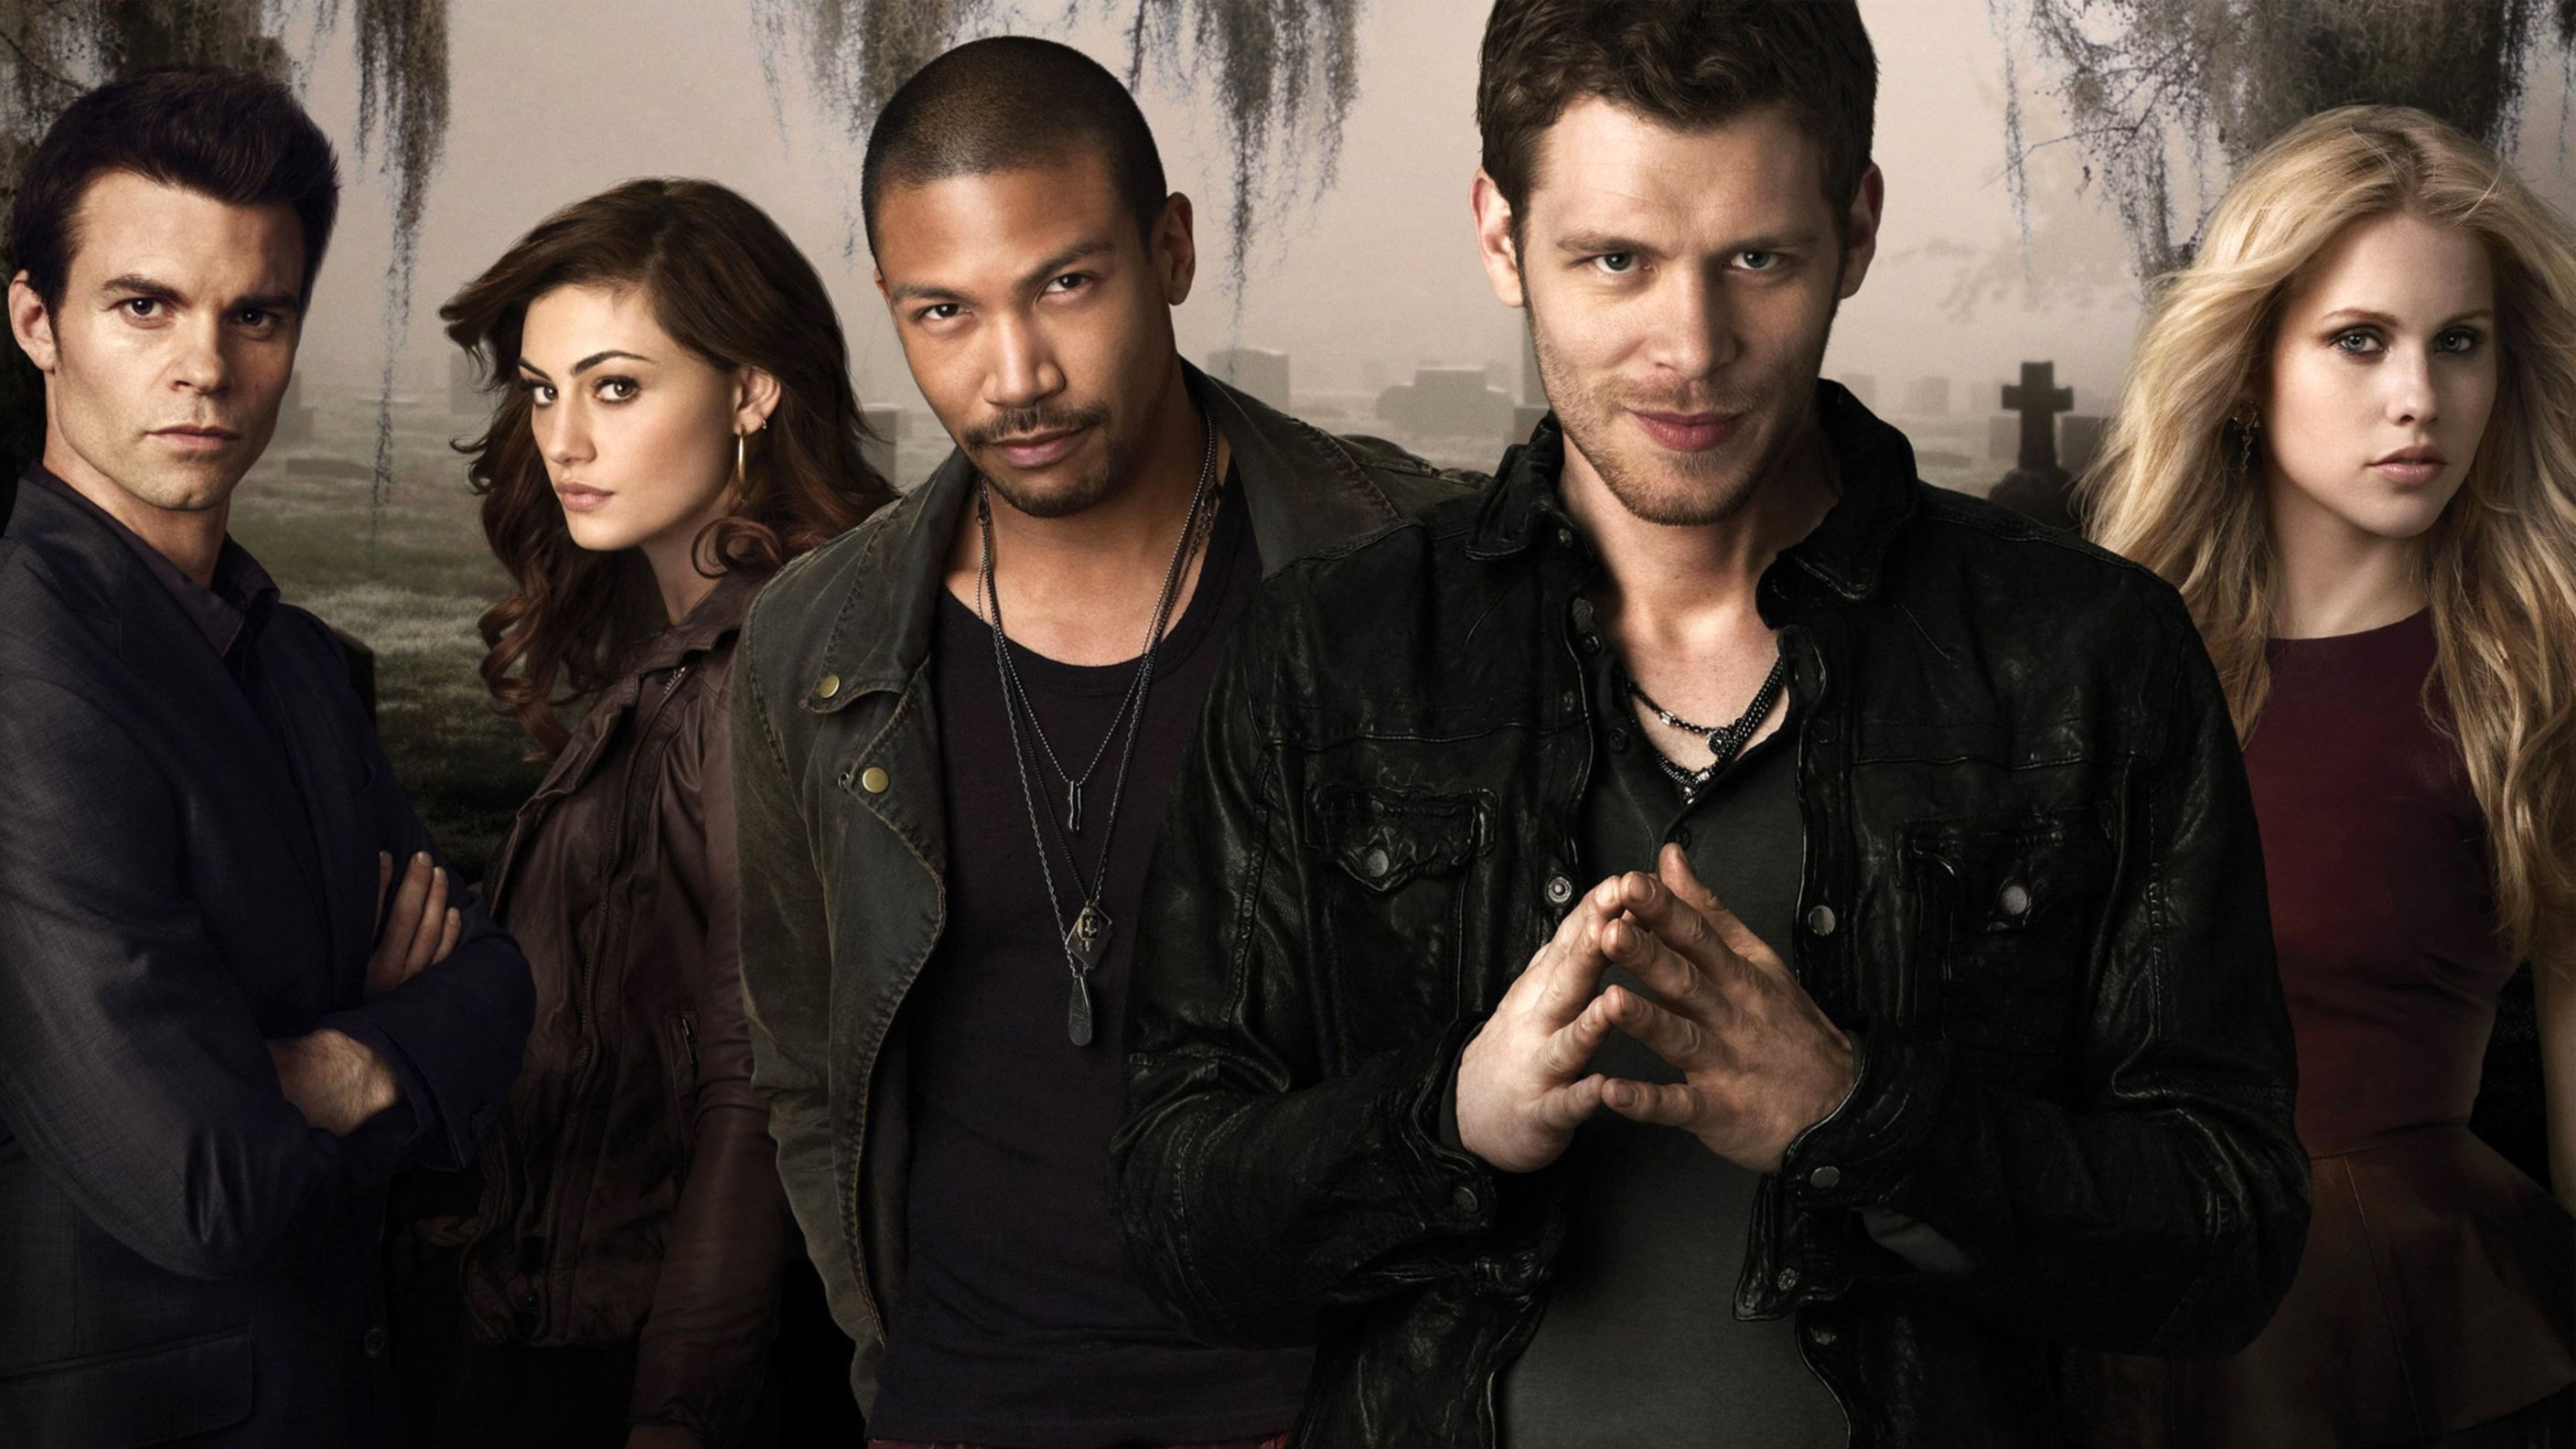 Download free HD The Originals TV Show HD Wallpaper, image